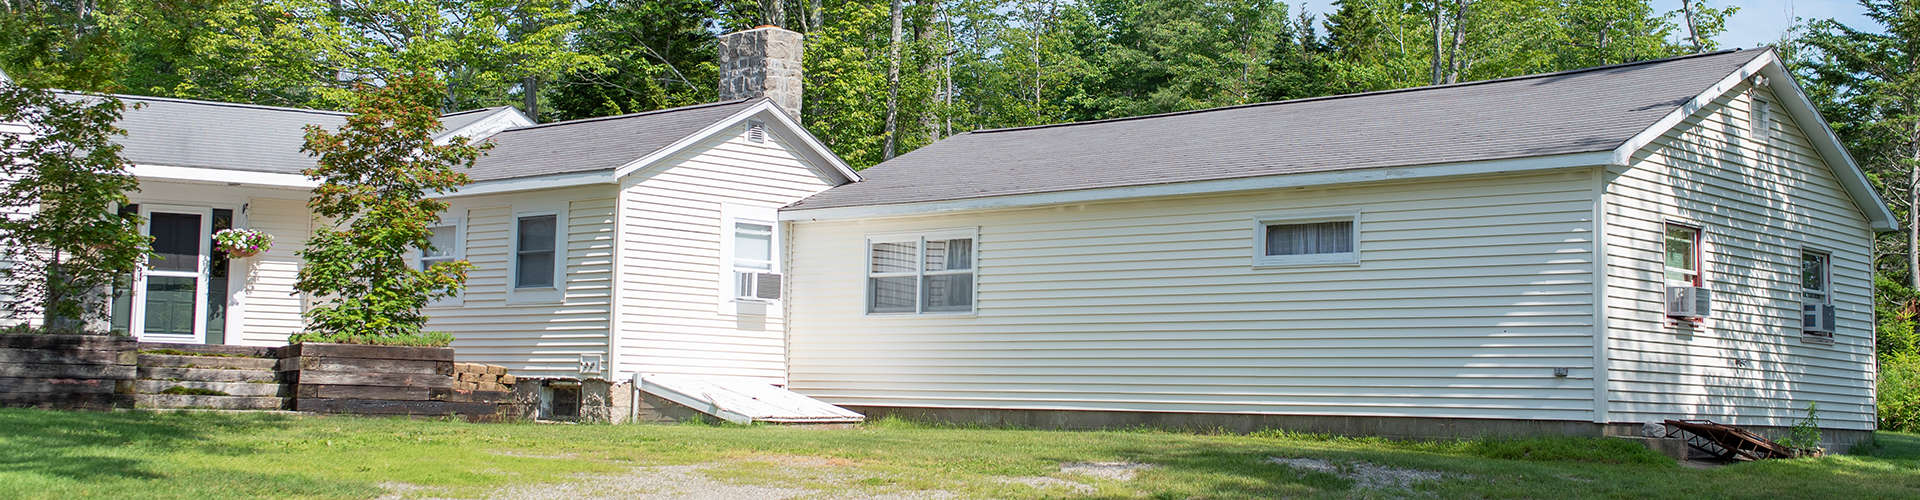 longbarn- a vacation rental on mount desert island